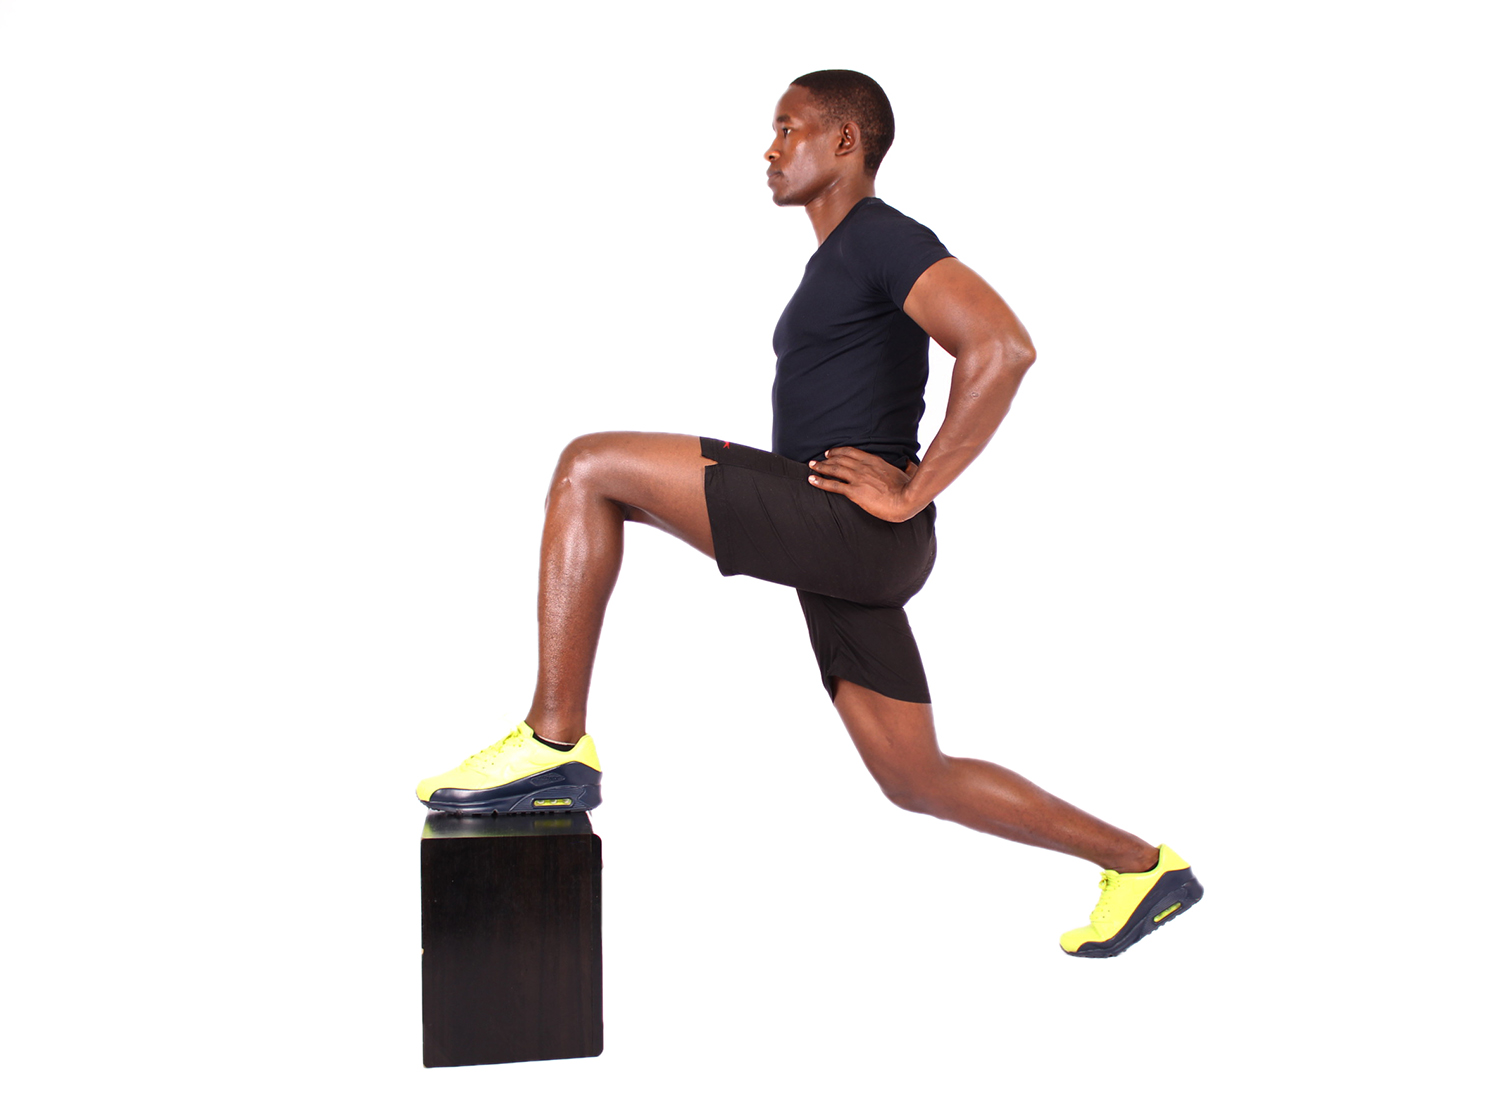 Athlete doing lunges on step up box